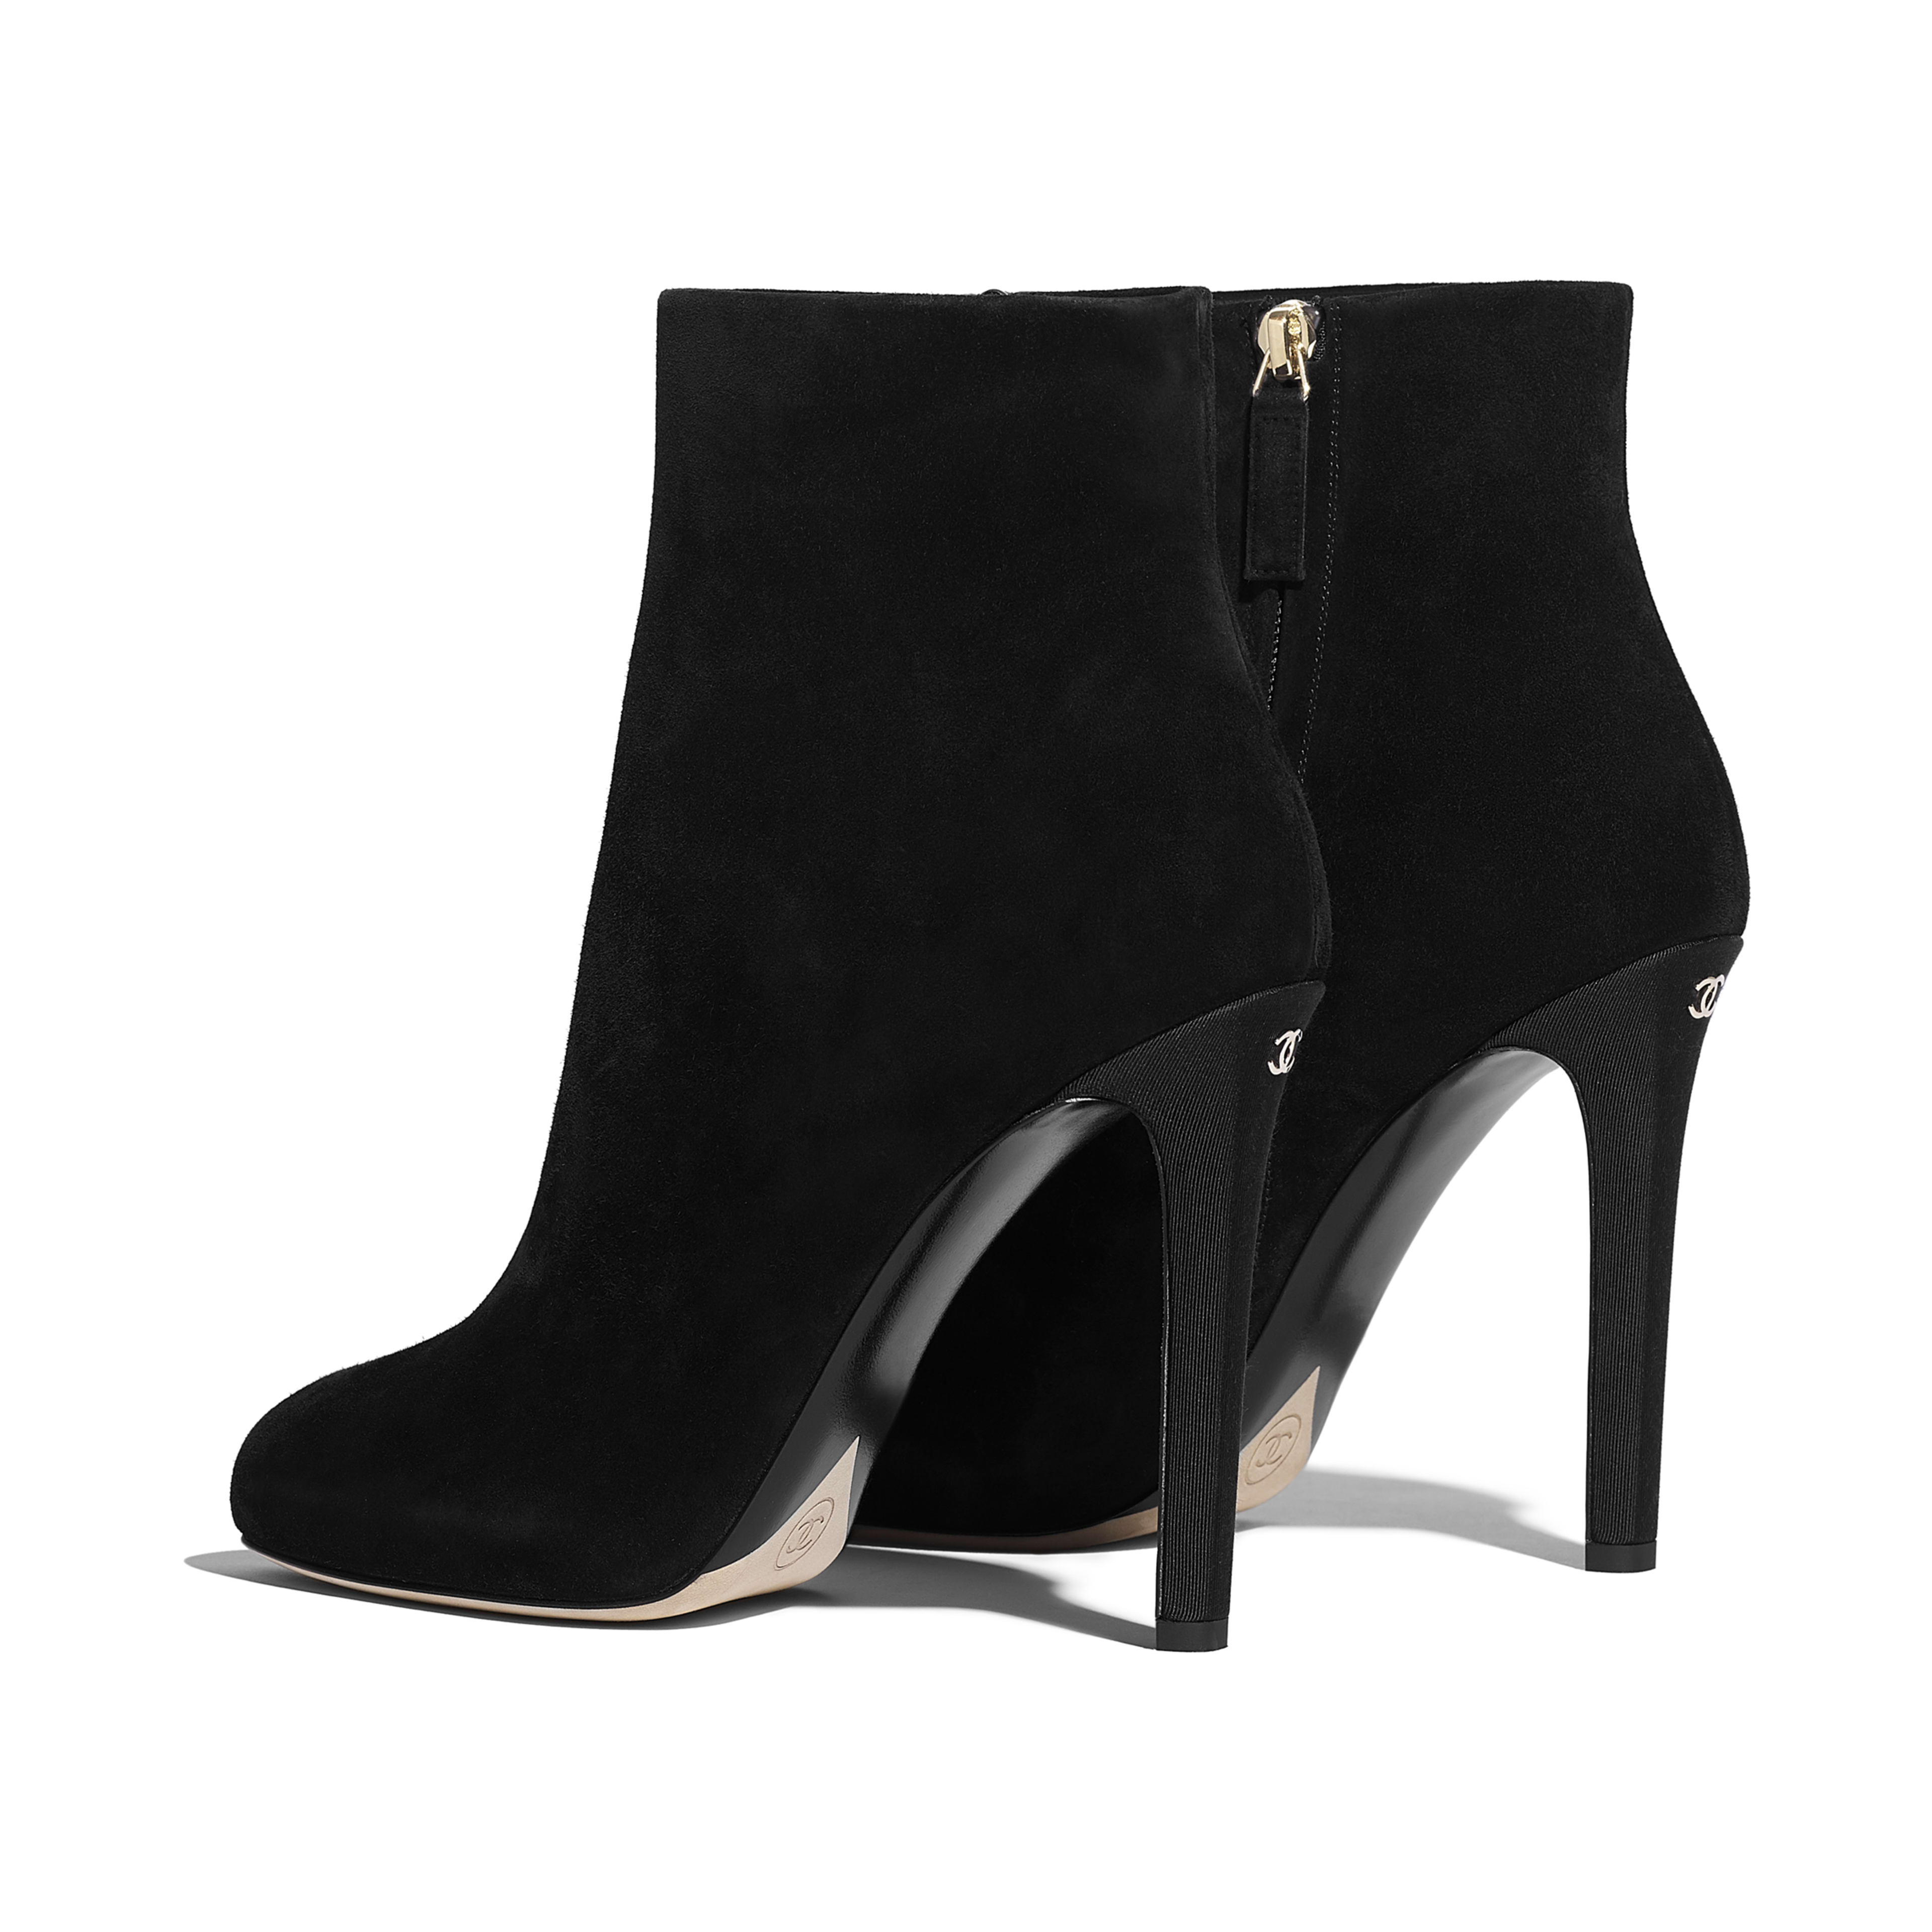 Ankle Boots - Black - Suede Calfskin - Other view - see full sized version